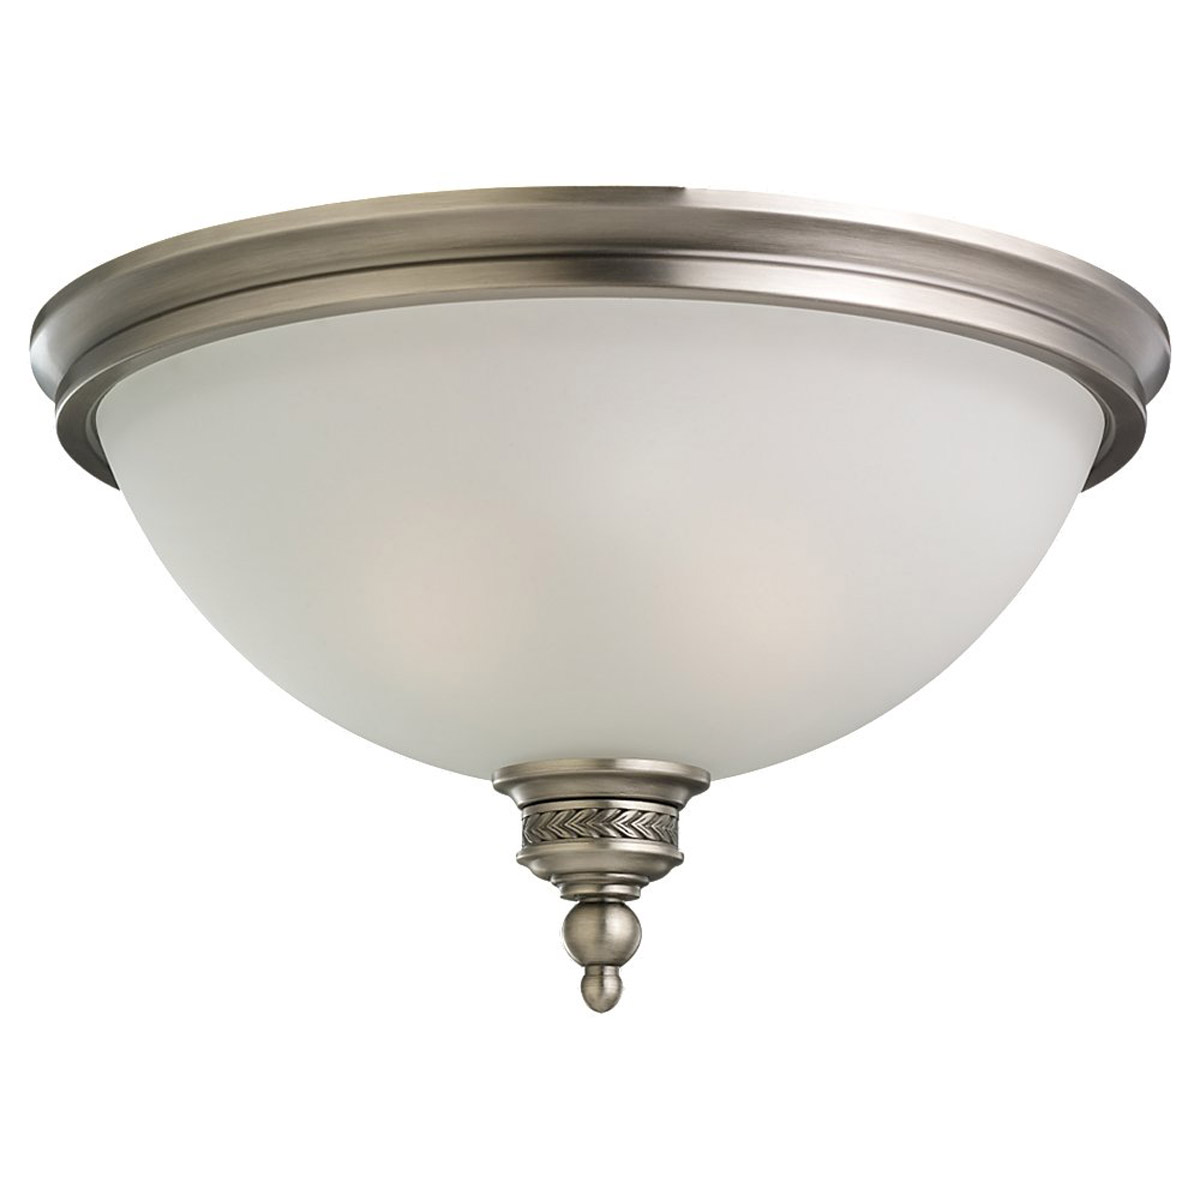 Sea Gull Lighting Laurel Leaf 2 Light Flush Mount in Antique Brushed Nickel 75350-965 photo